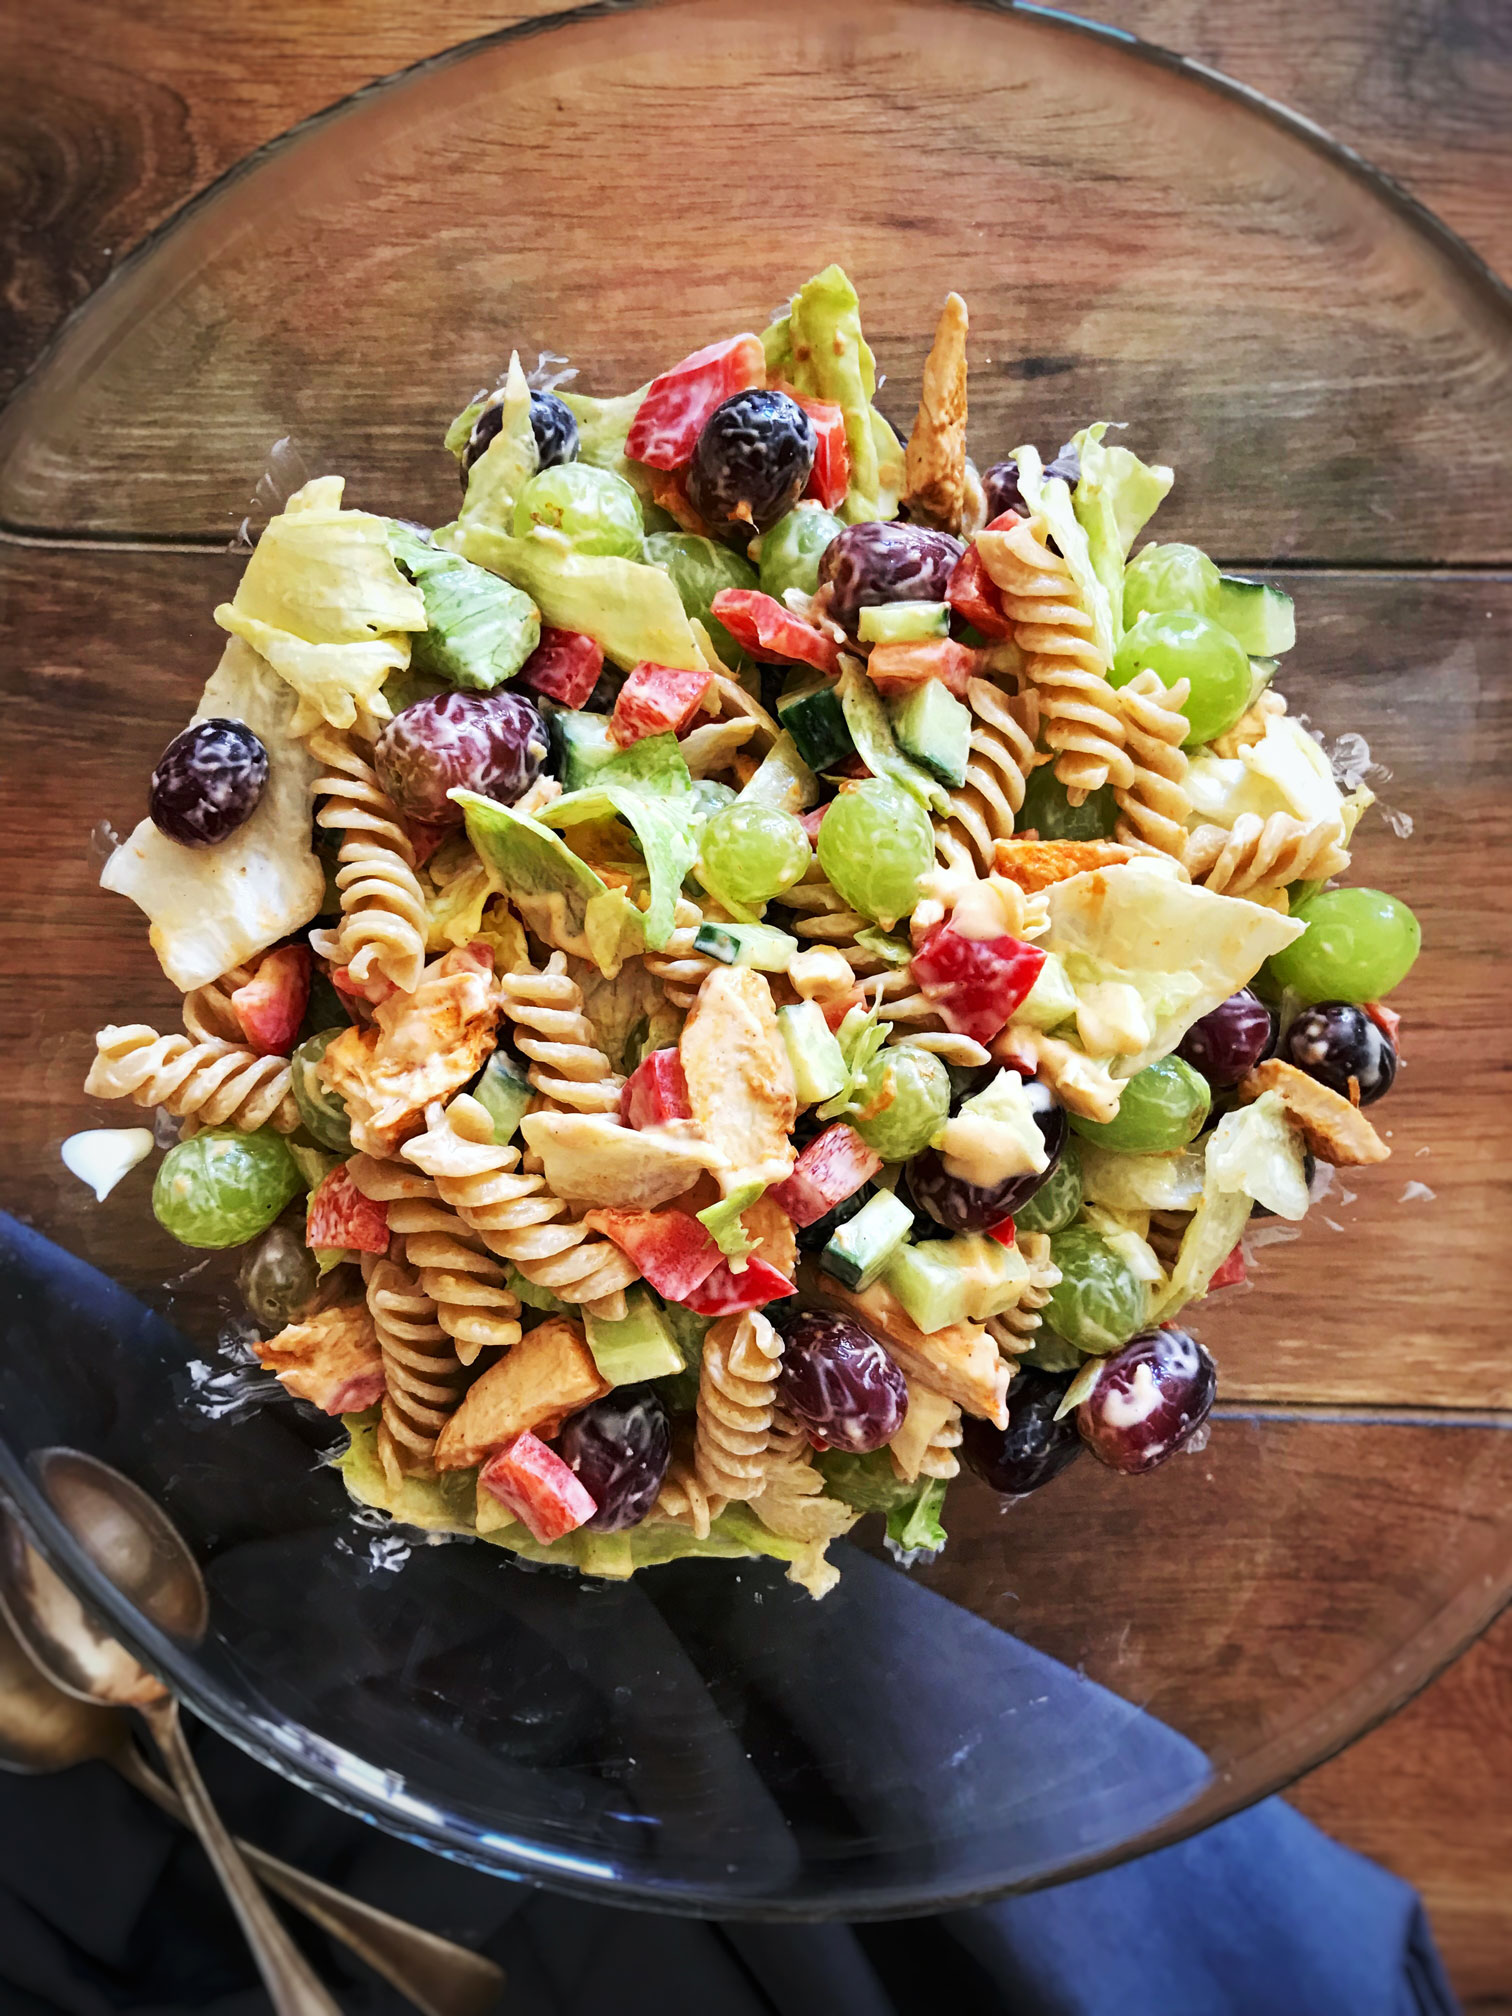 Indian spiced chicken and pasta salad